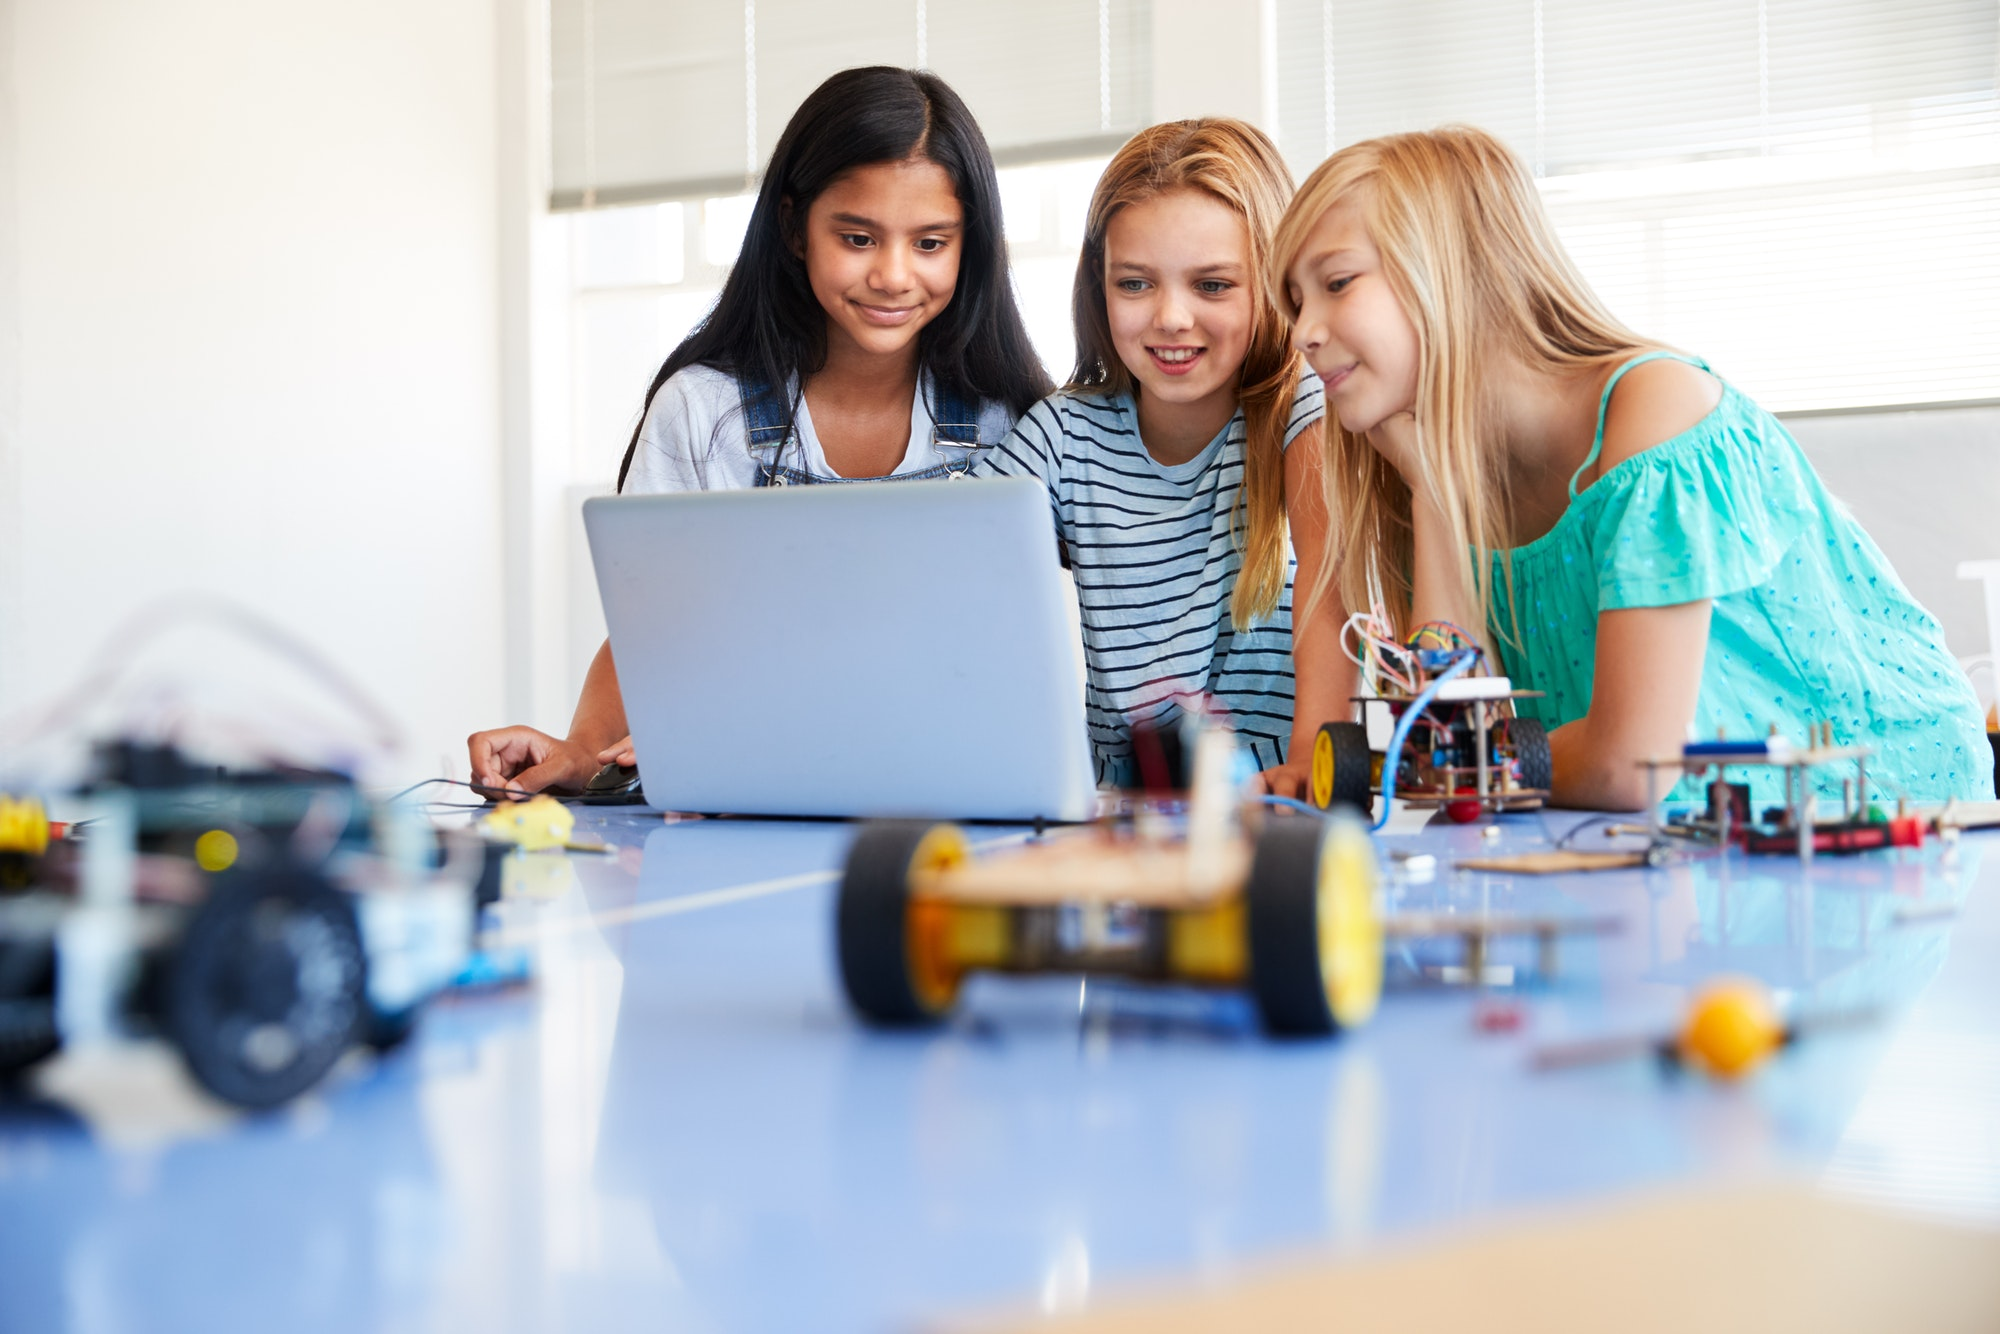 three-female-students-building-and-programing-robot-vehicle-in-after-school-computer-coding-class-2.jpg